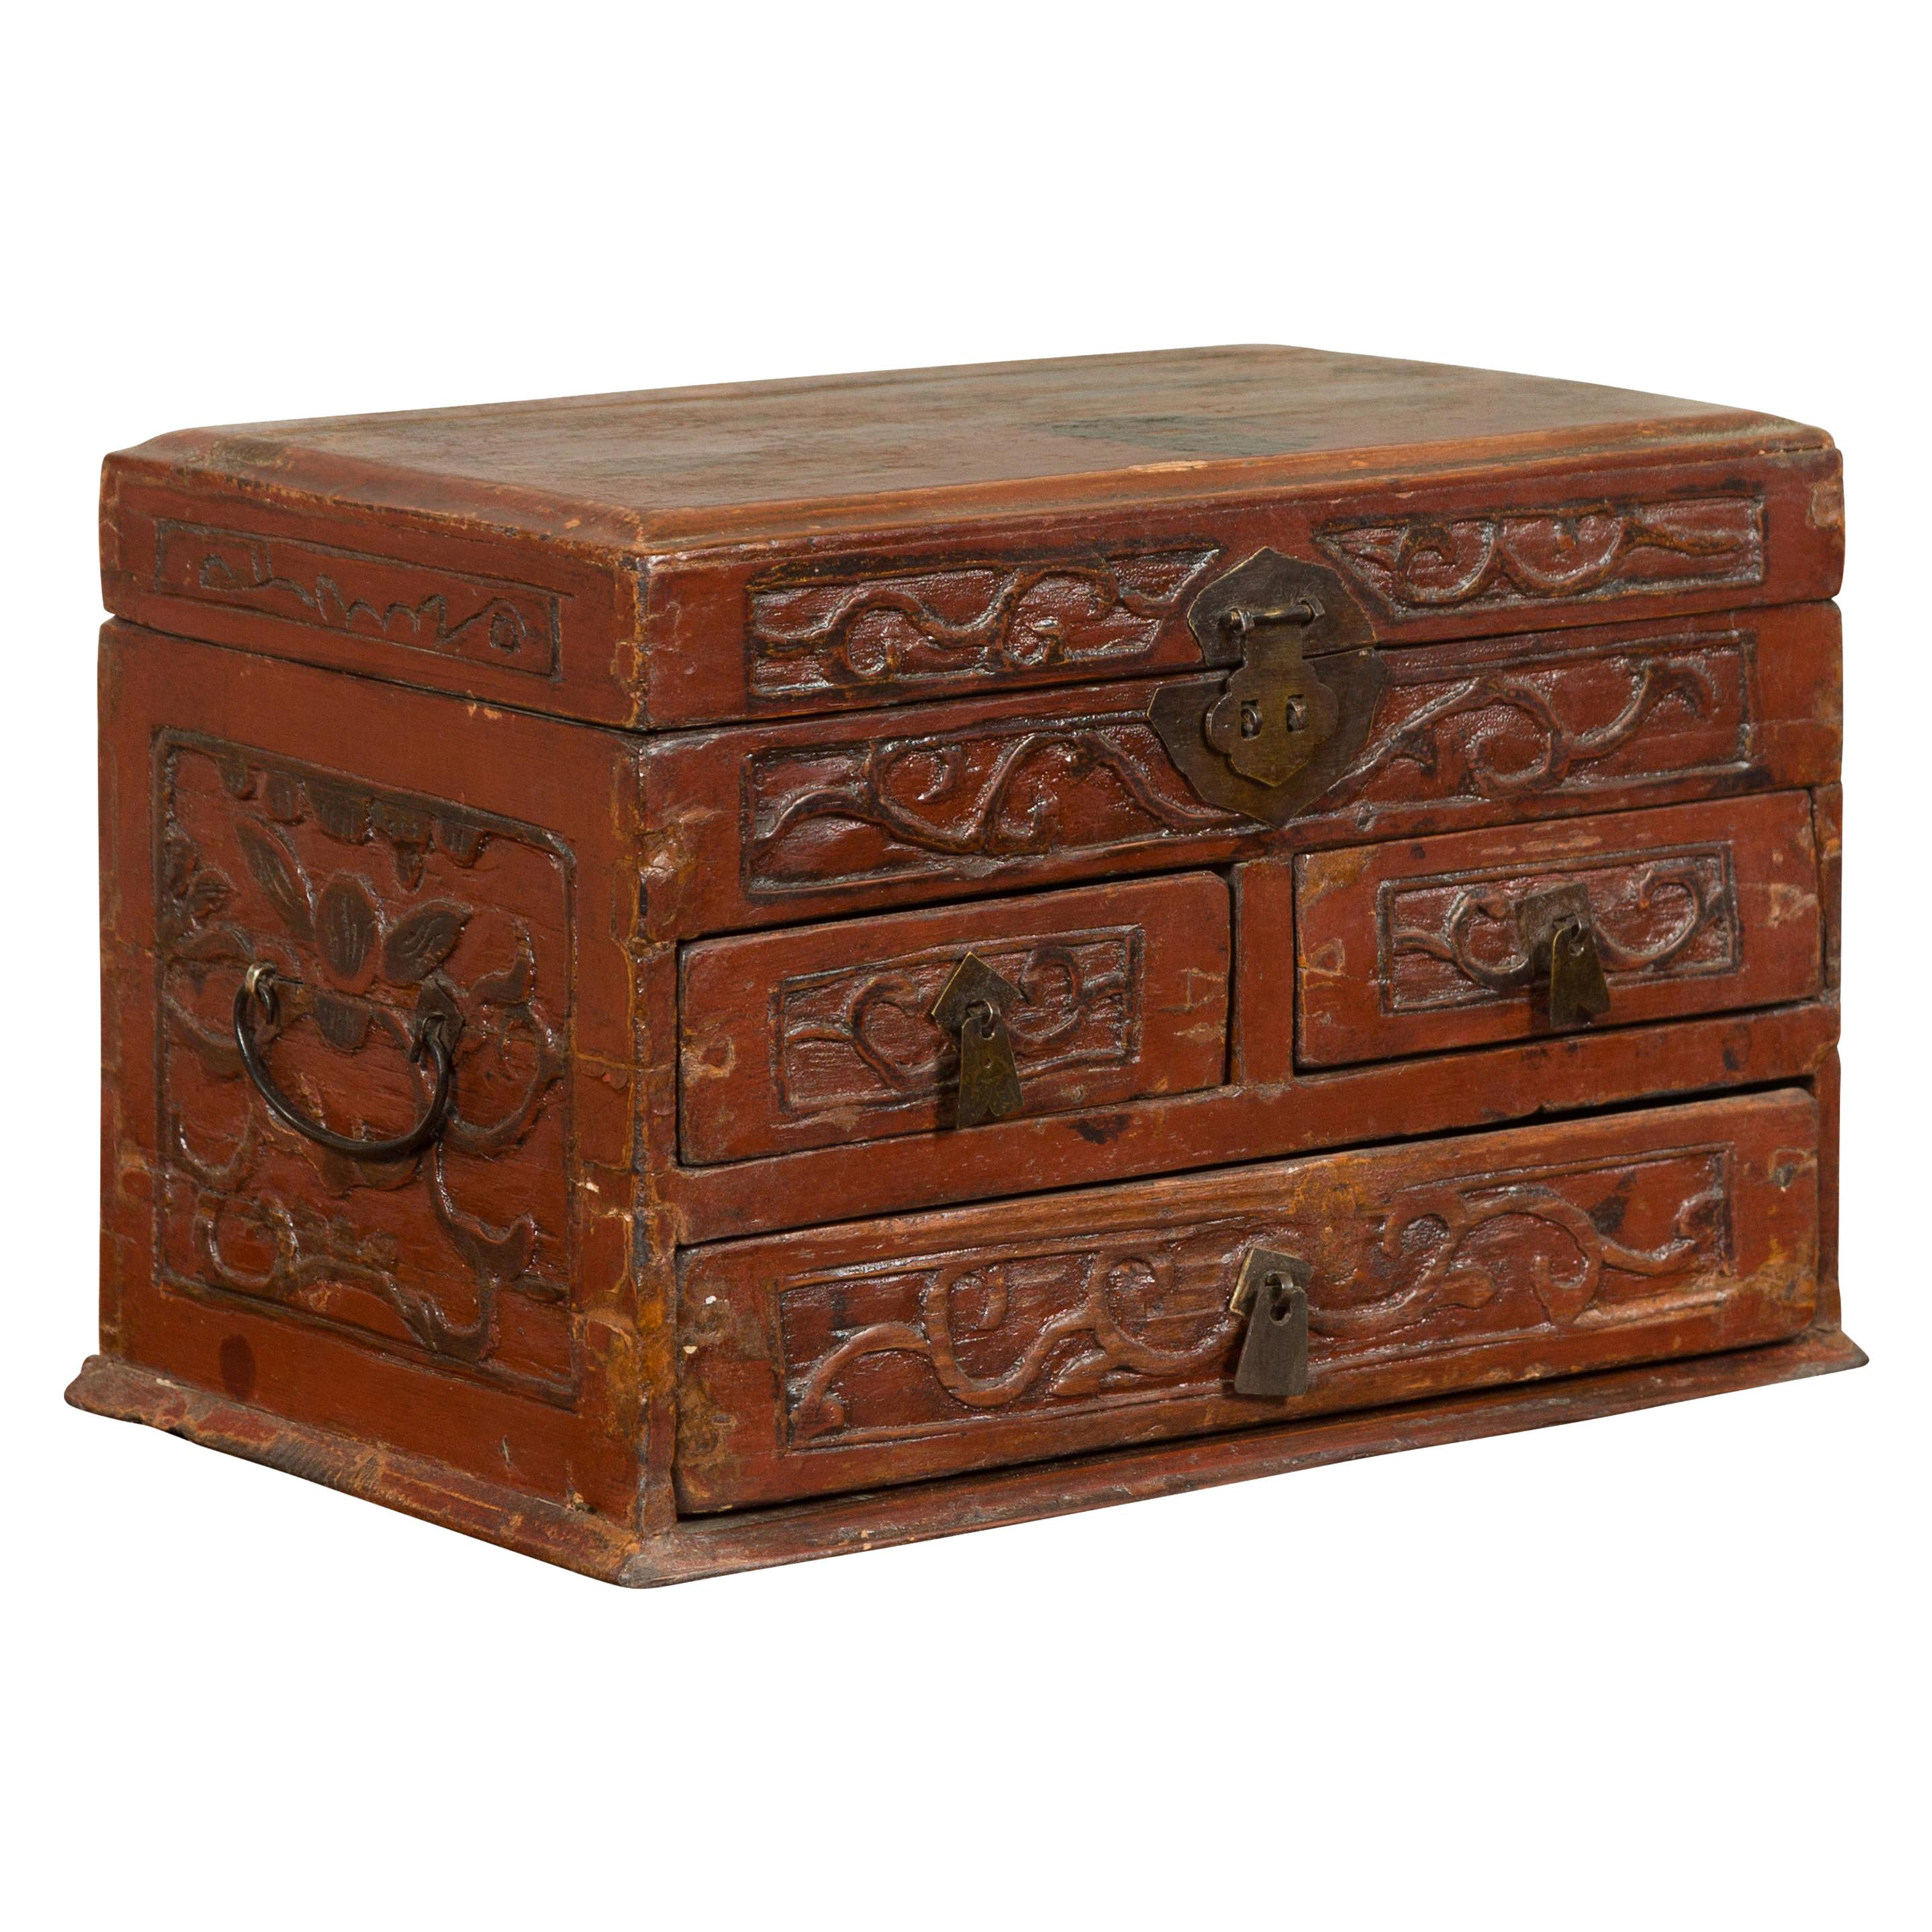 Chinese Qing Dynasty Carved Wooden Jewelry Chest with Lidded Top and Drawers